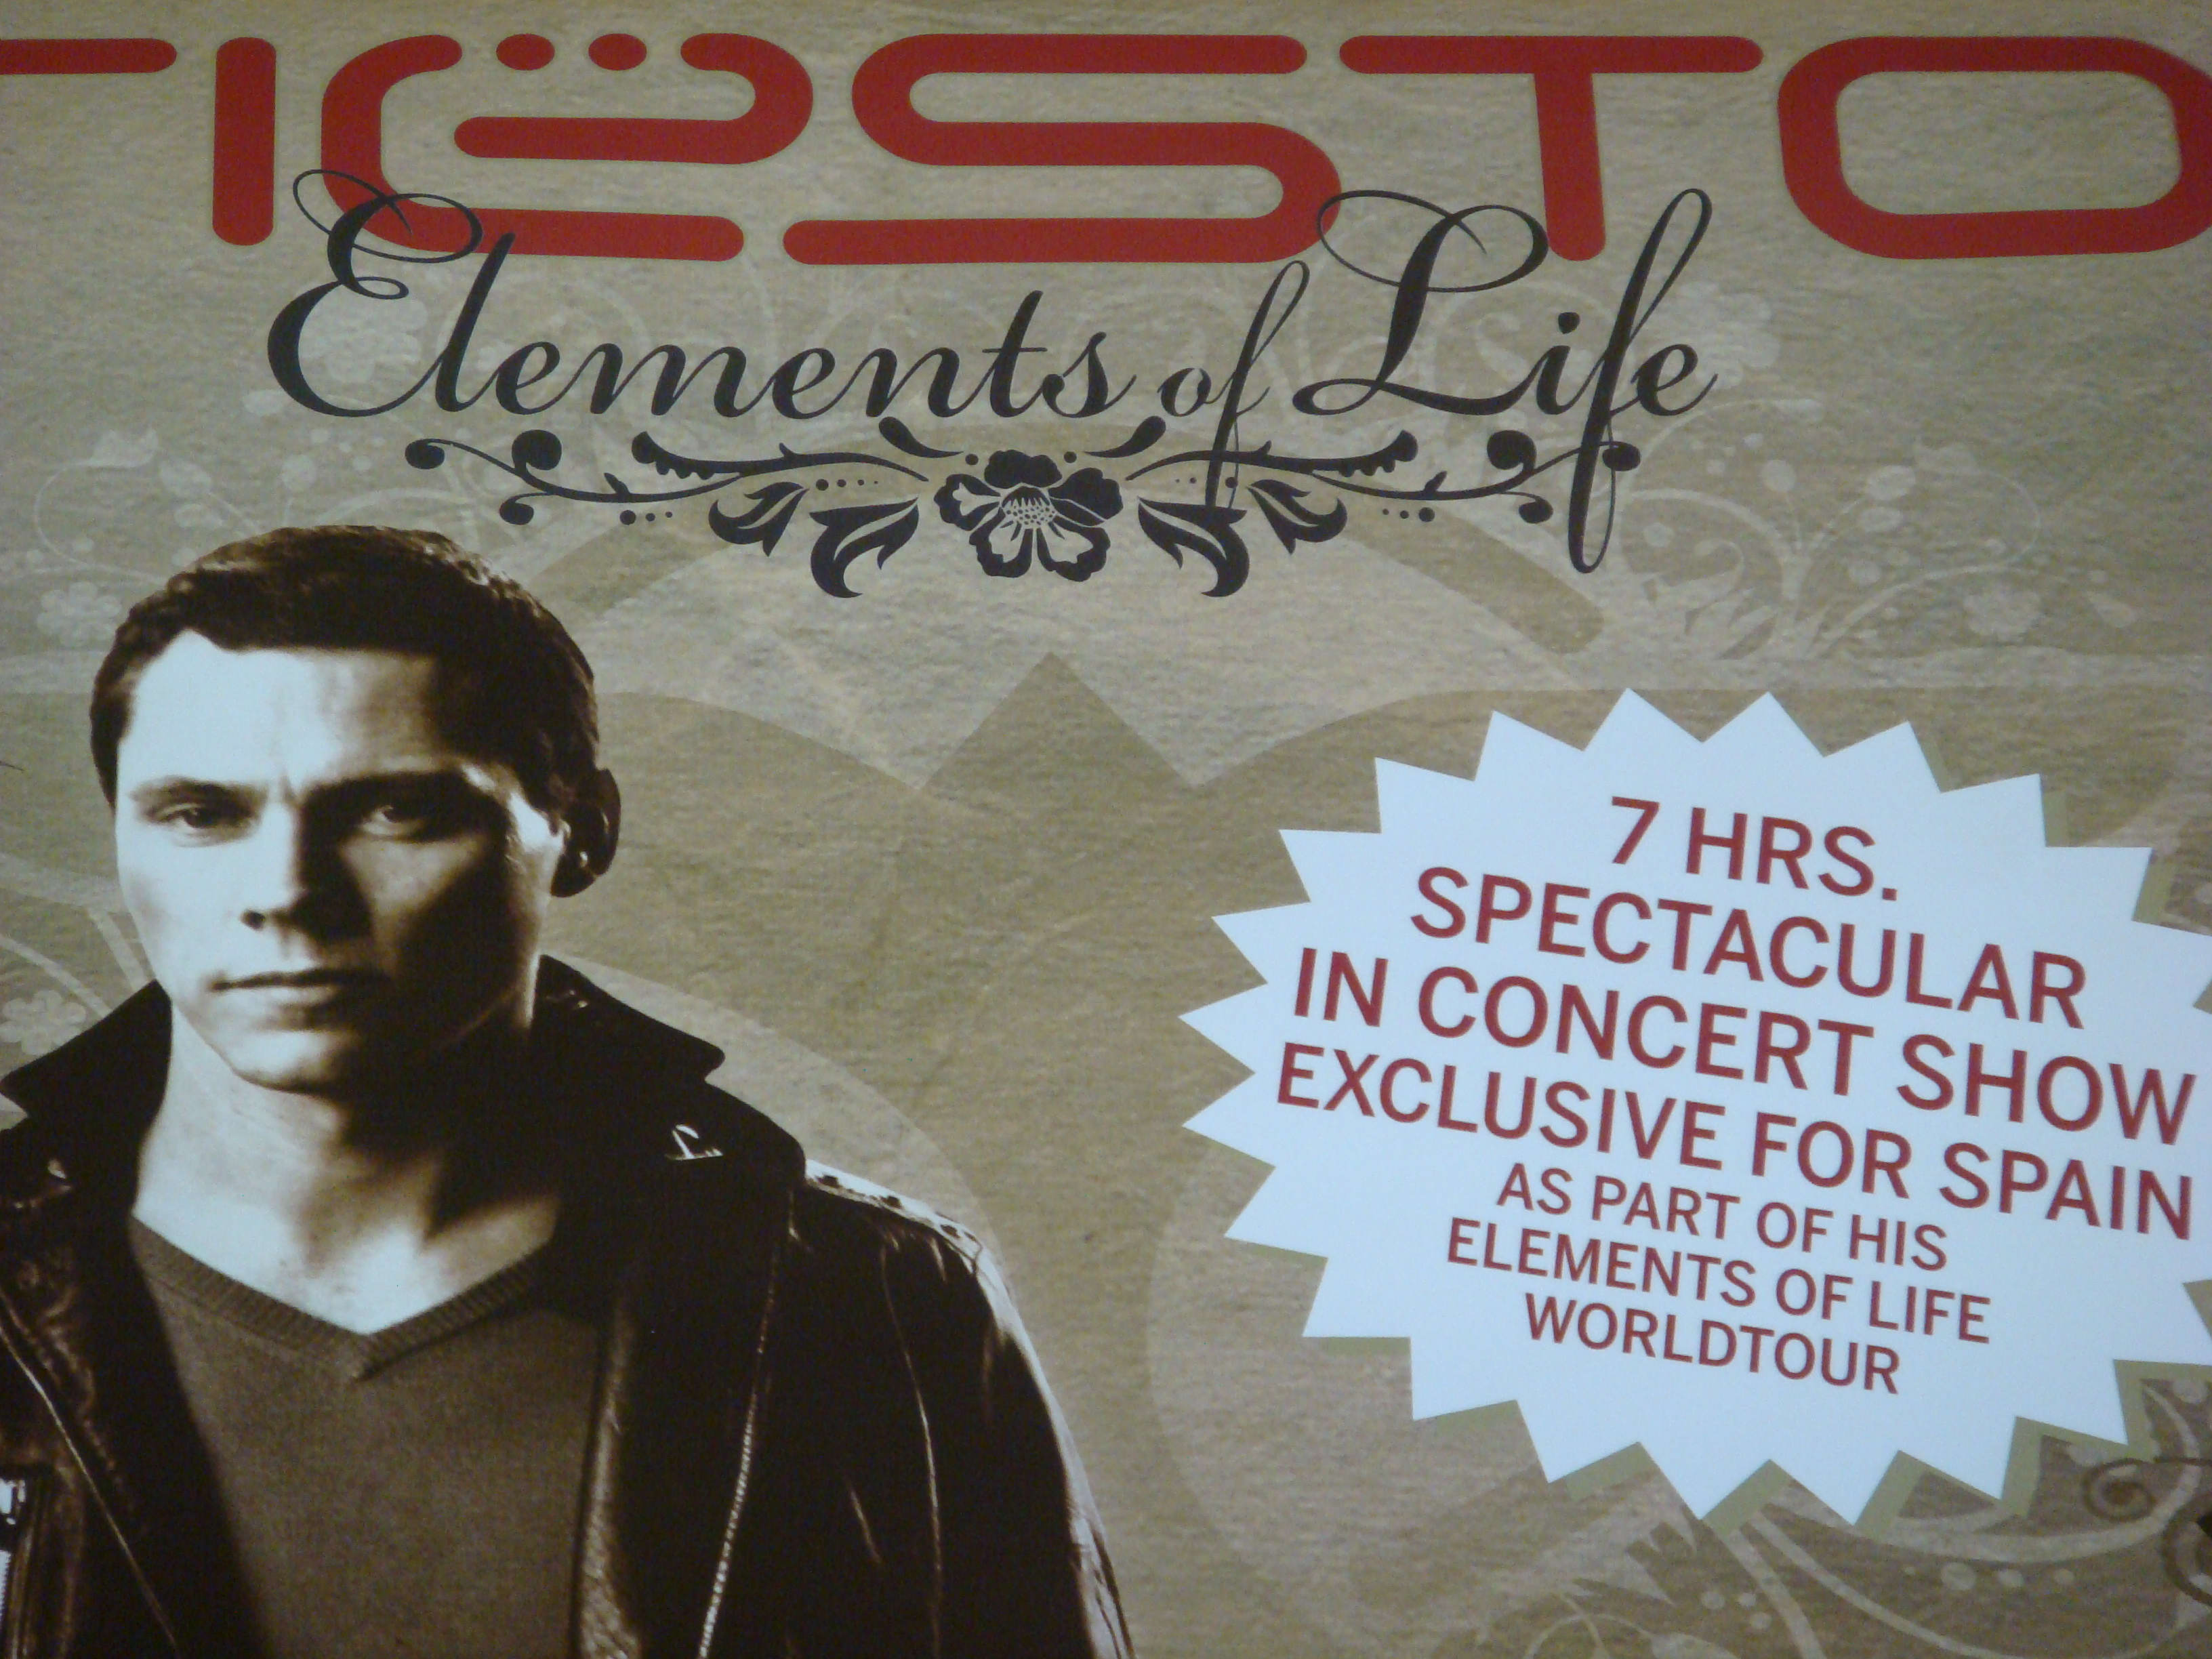 Dj Tiesto Elements of Life World Tour Poster Ibiza Privilege 18 August 2007